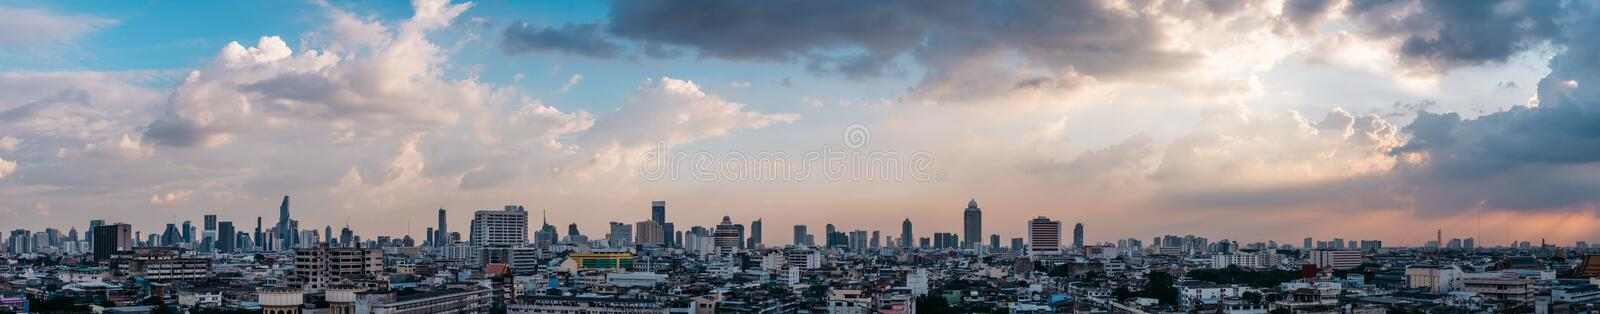 Cityscape panorama of Bangkok during the sunset with colorful sky in Thailand Asia stock photos